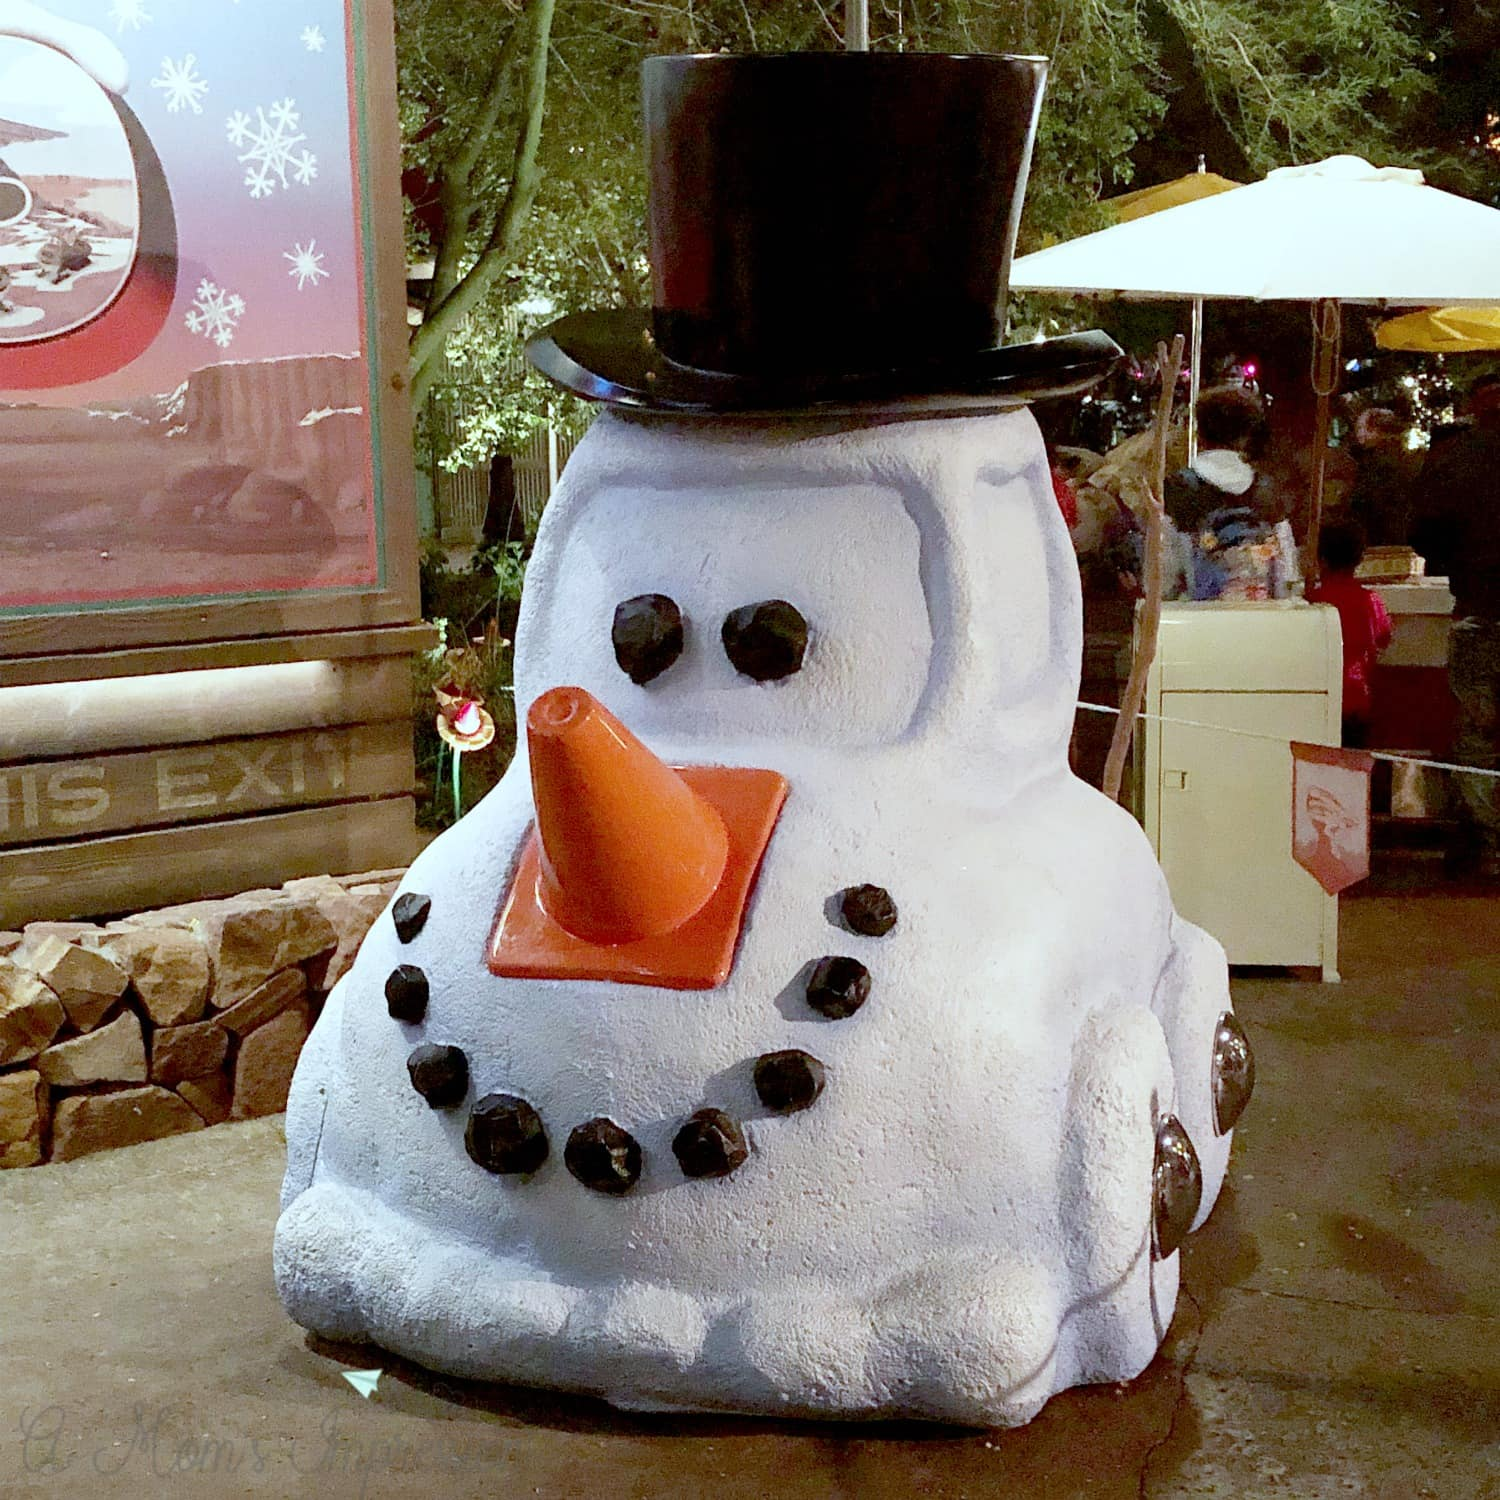 Disneyland Decorated For Christmas: Experience Amazing Disneyland Christmas Decorations